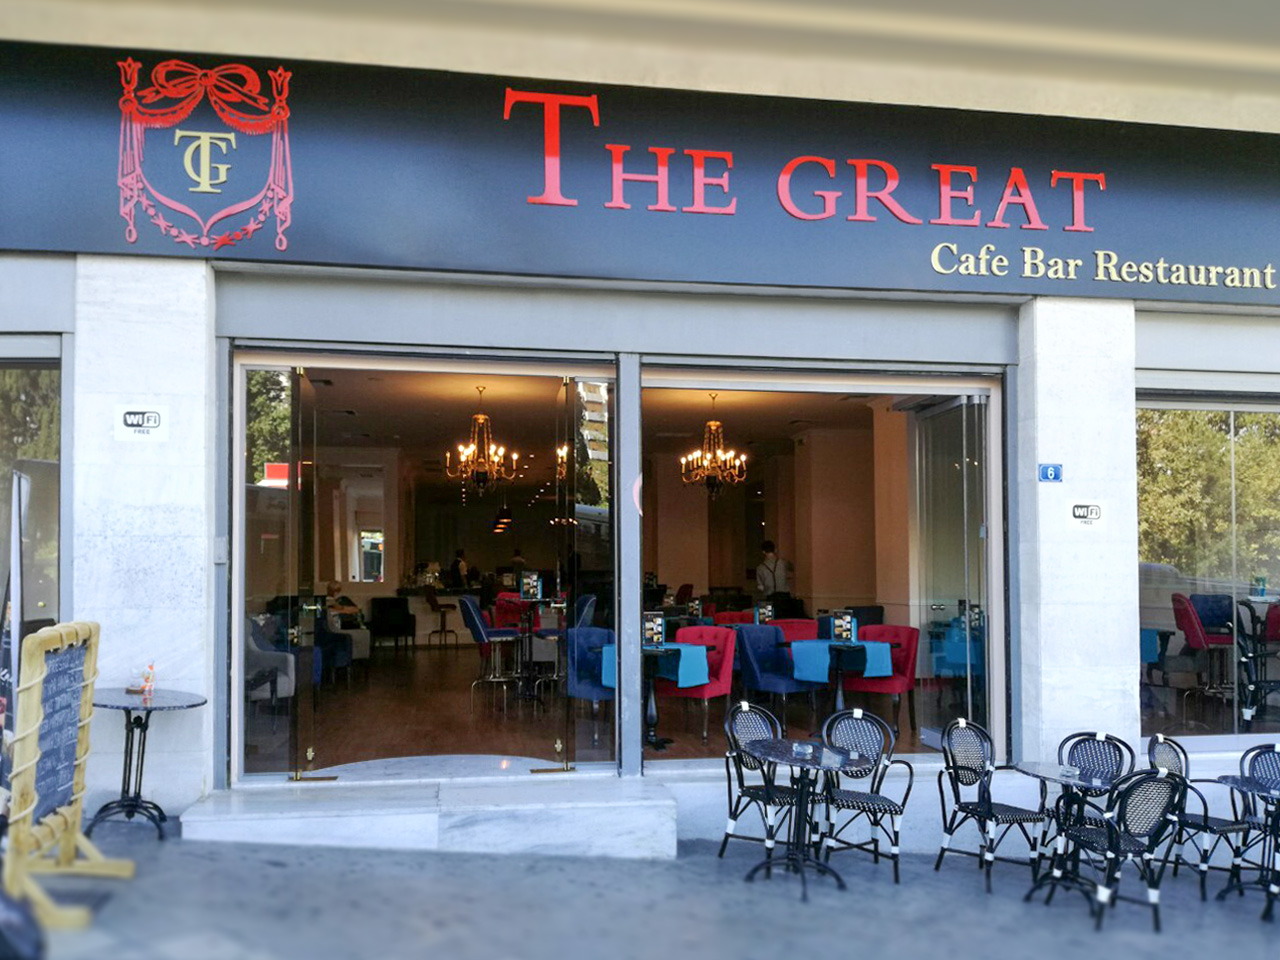 The Great. Cafe-bar restaurant